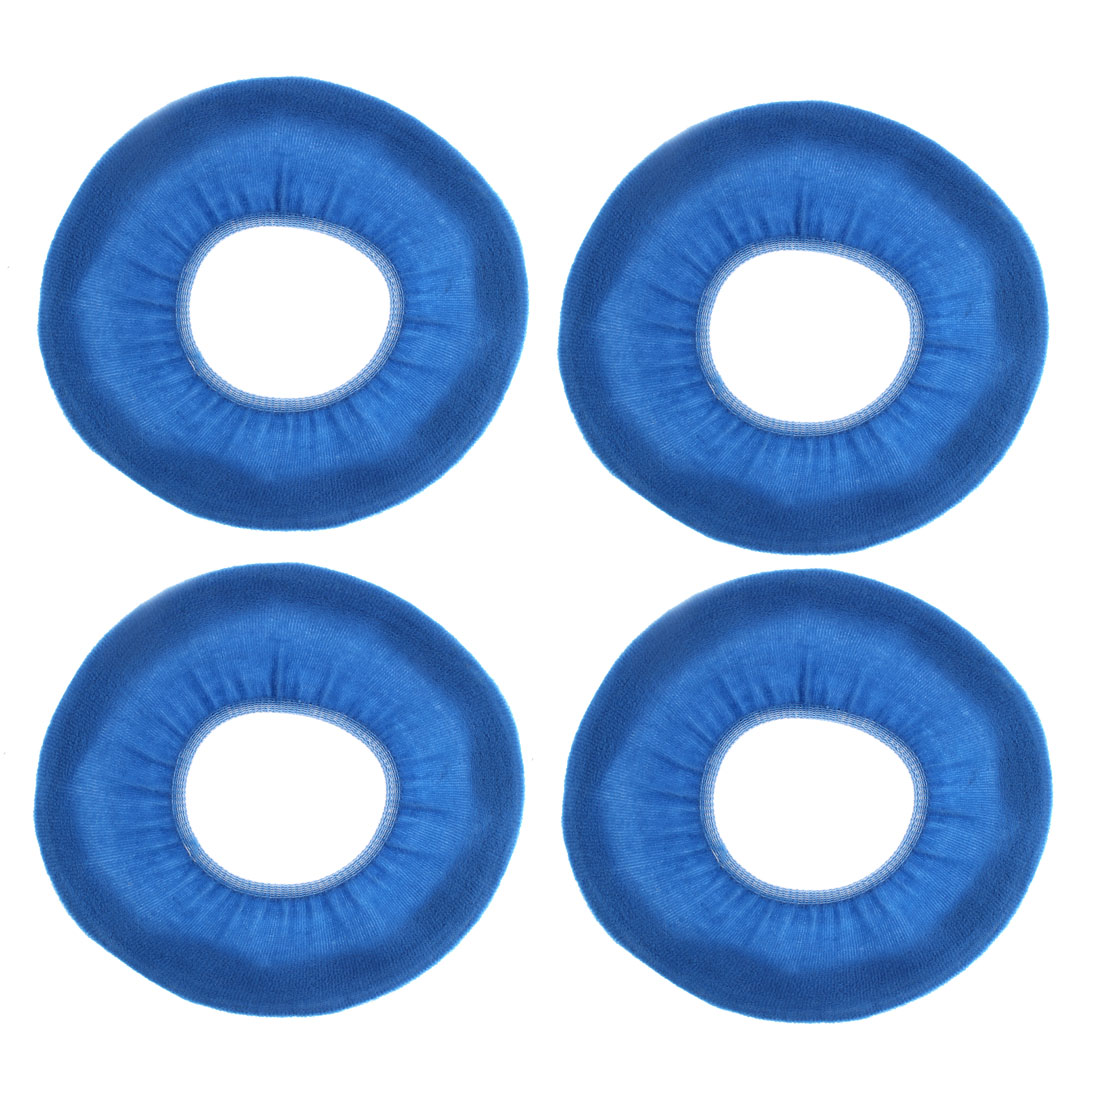 Bathroom Fleece Warmer Closestool Toilet Seat Lid Cover Pad Mat Blue 4pcs